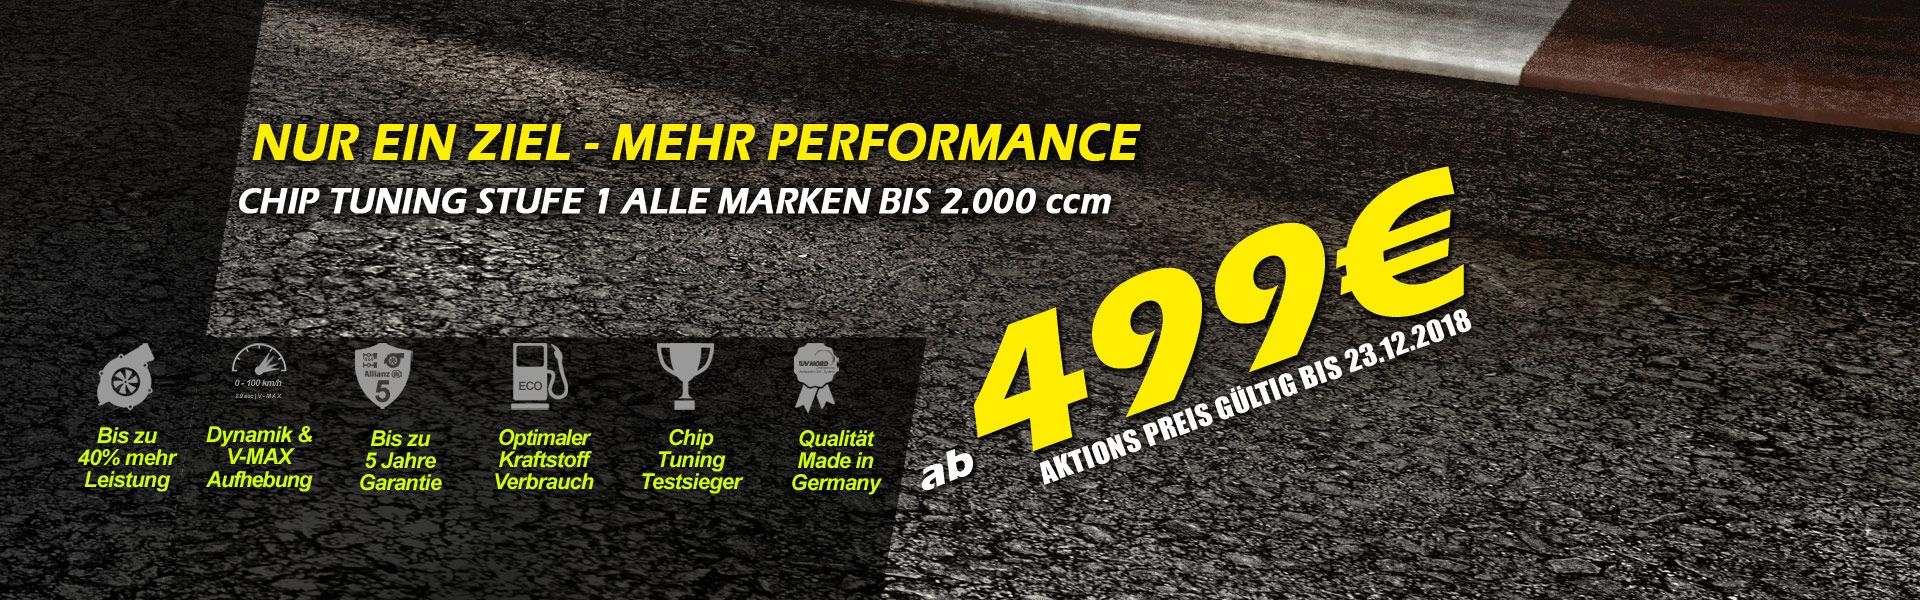 CHIP TUNING LEVEL 1 à partir de 499 € *